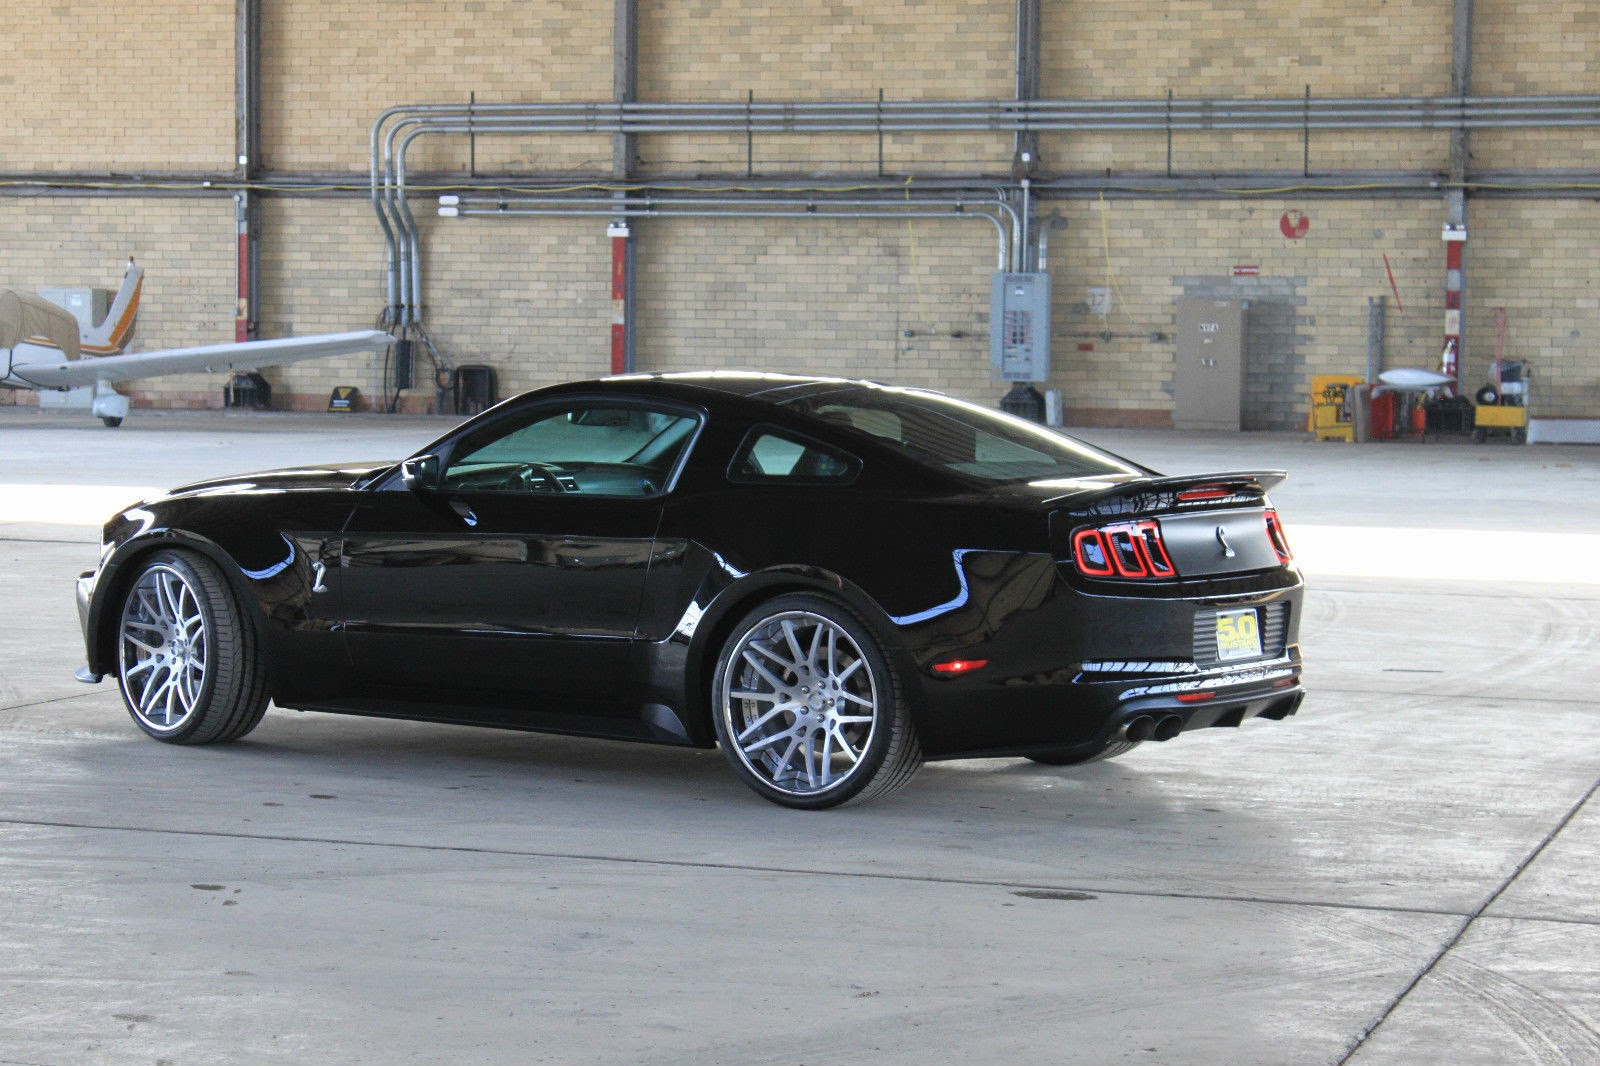 The 2014 steeda gt500 wide body a complete serialized vehicle package that includes serious performance modifications and dynamic styling available only